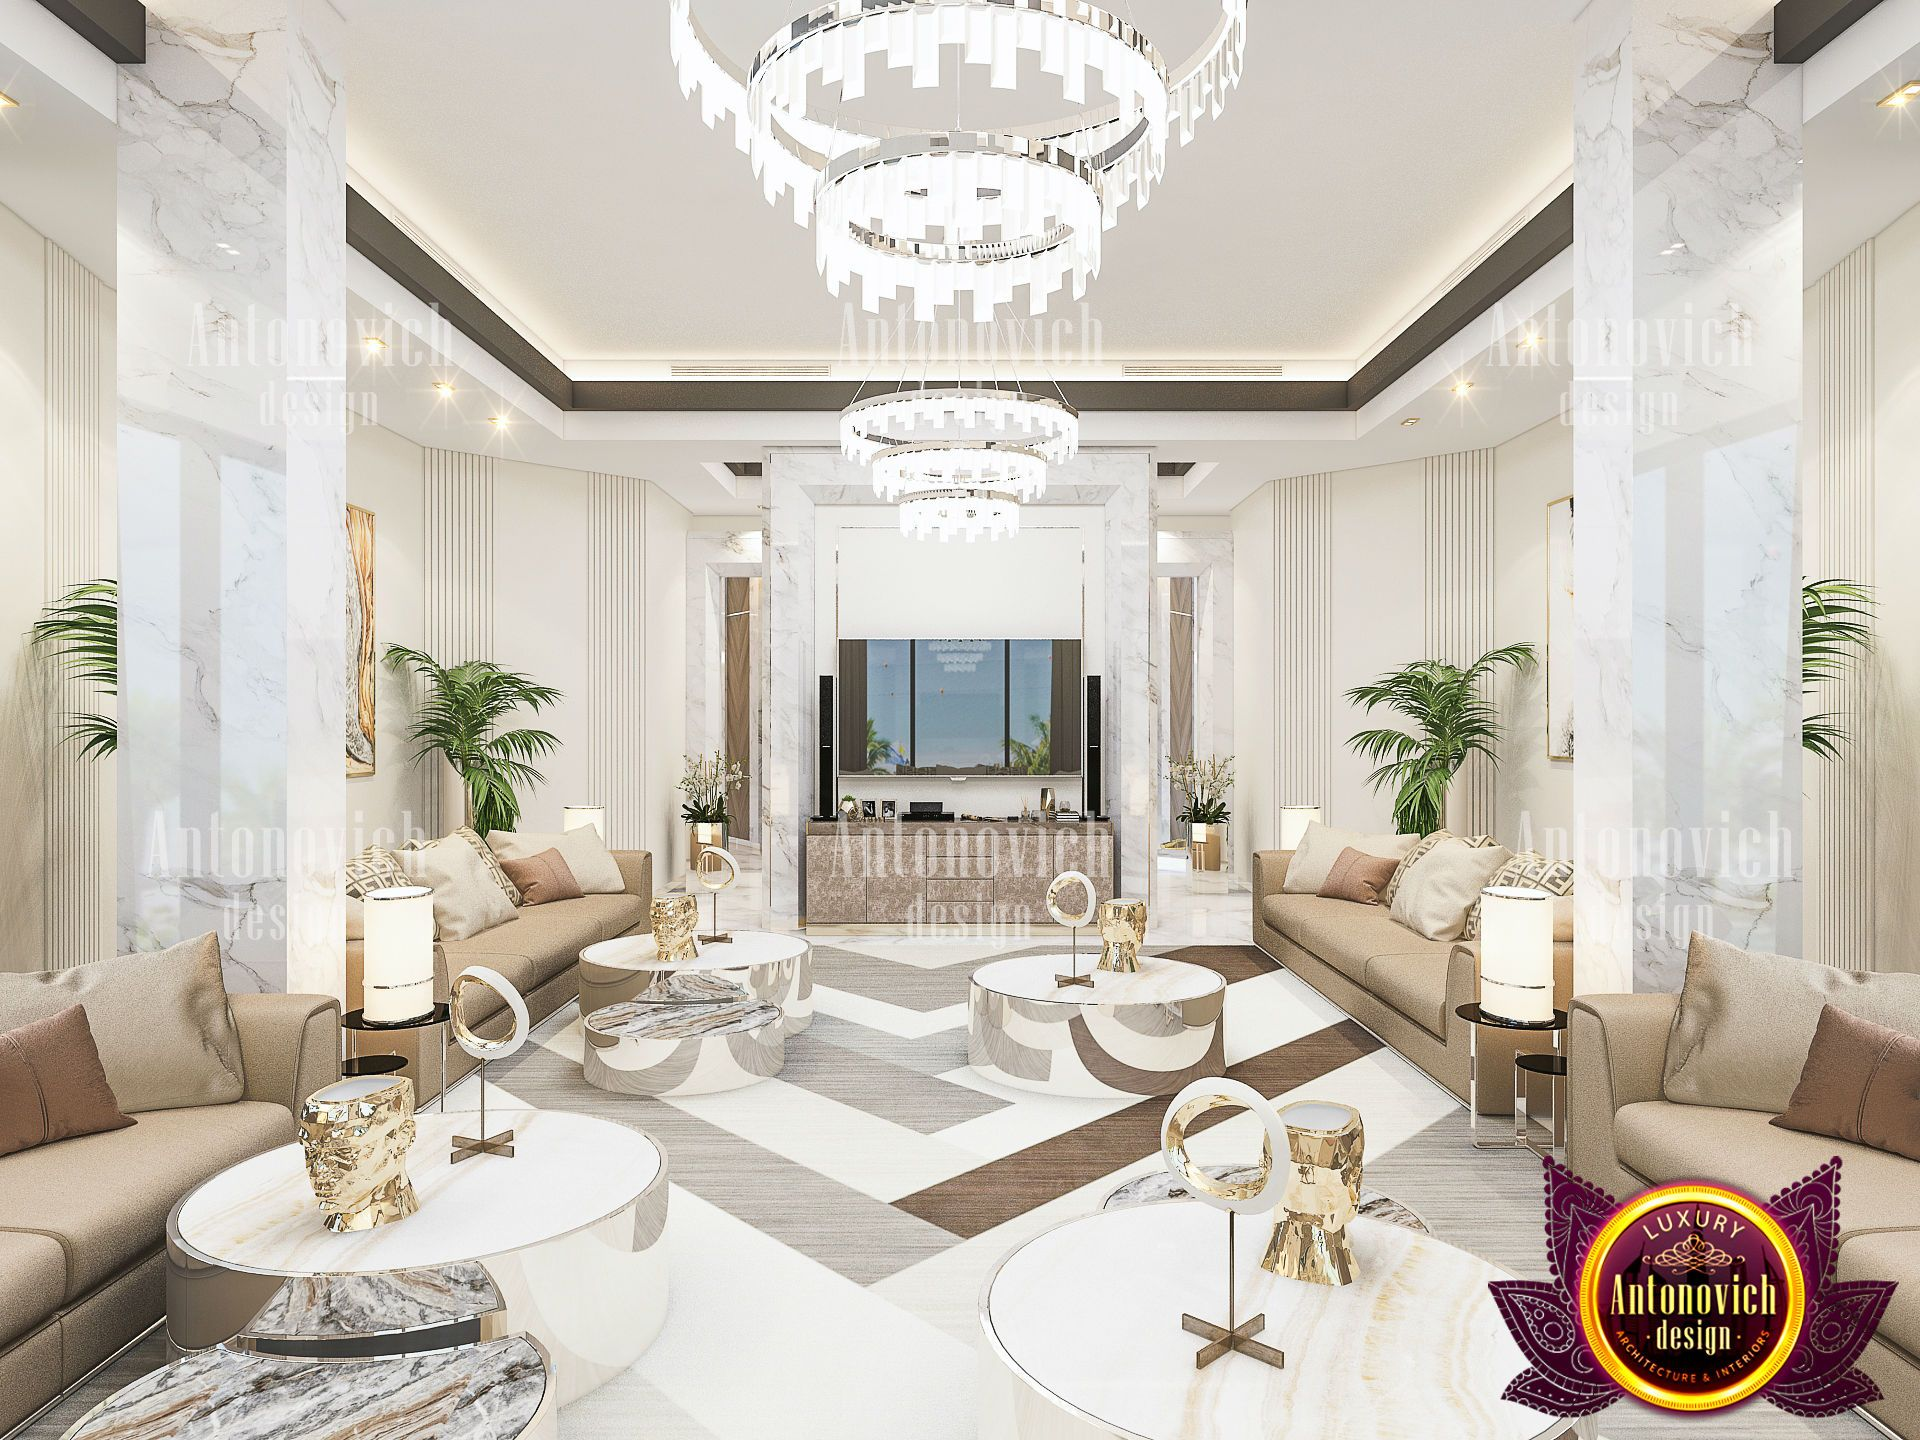 Top Interior Design Company In The Uae Creates A Single Whole From